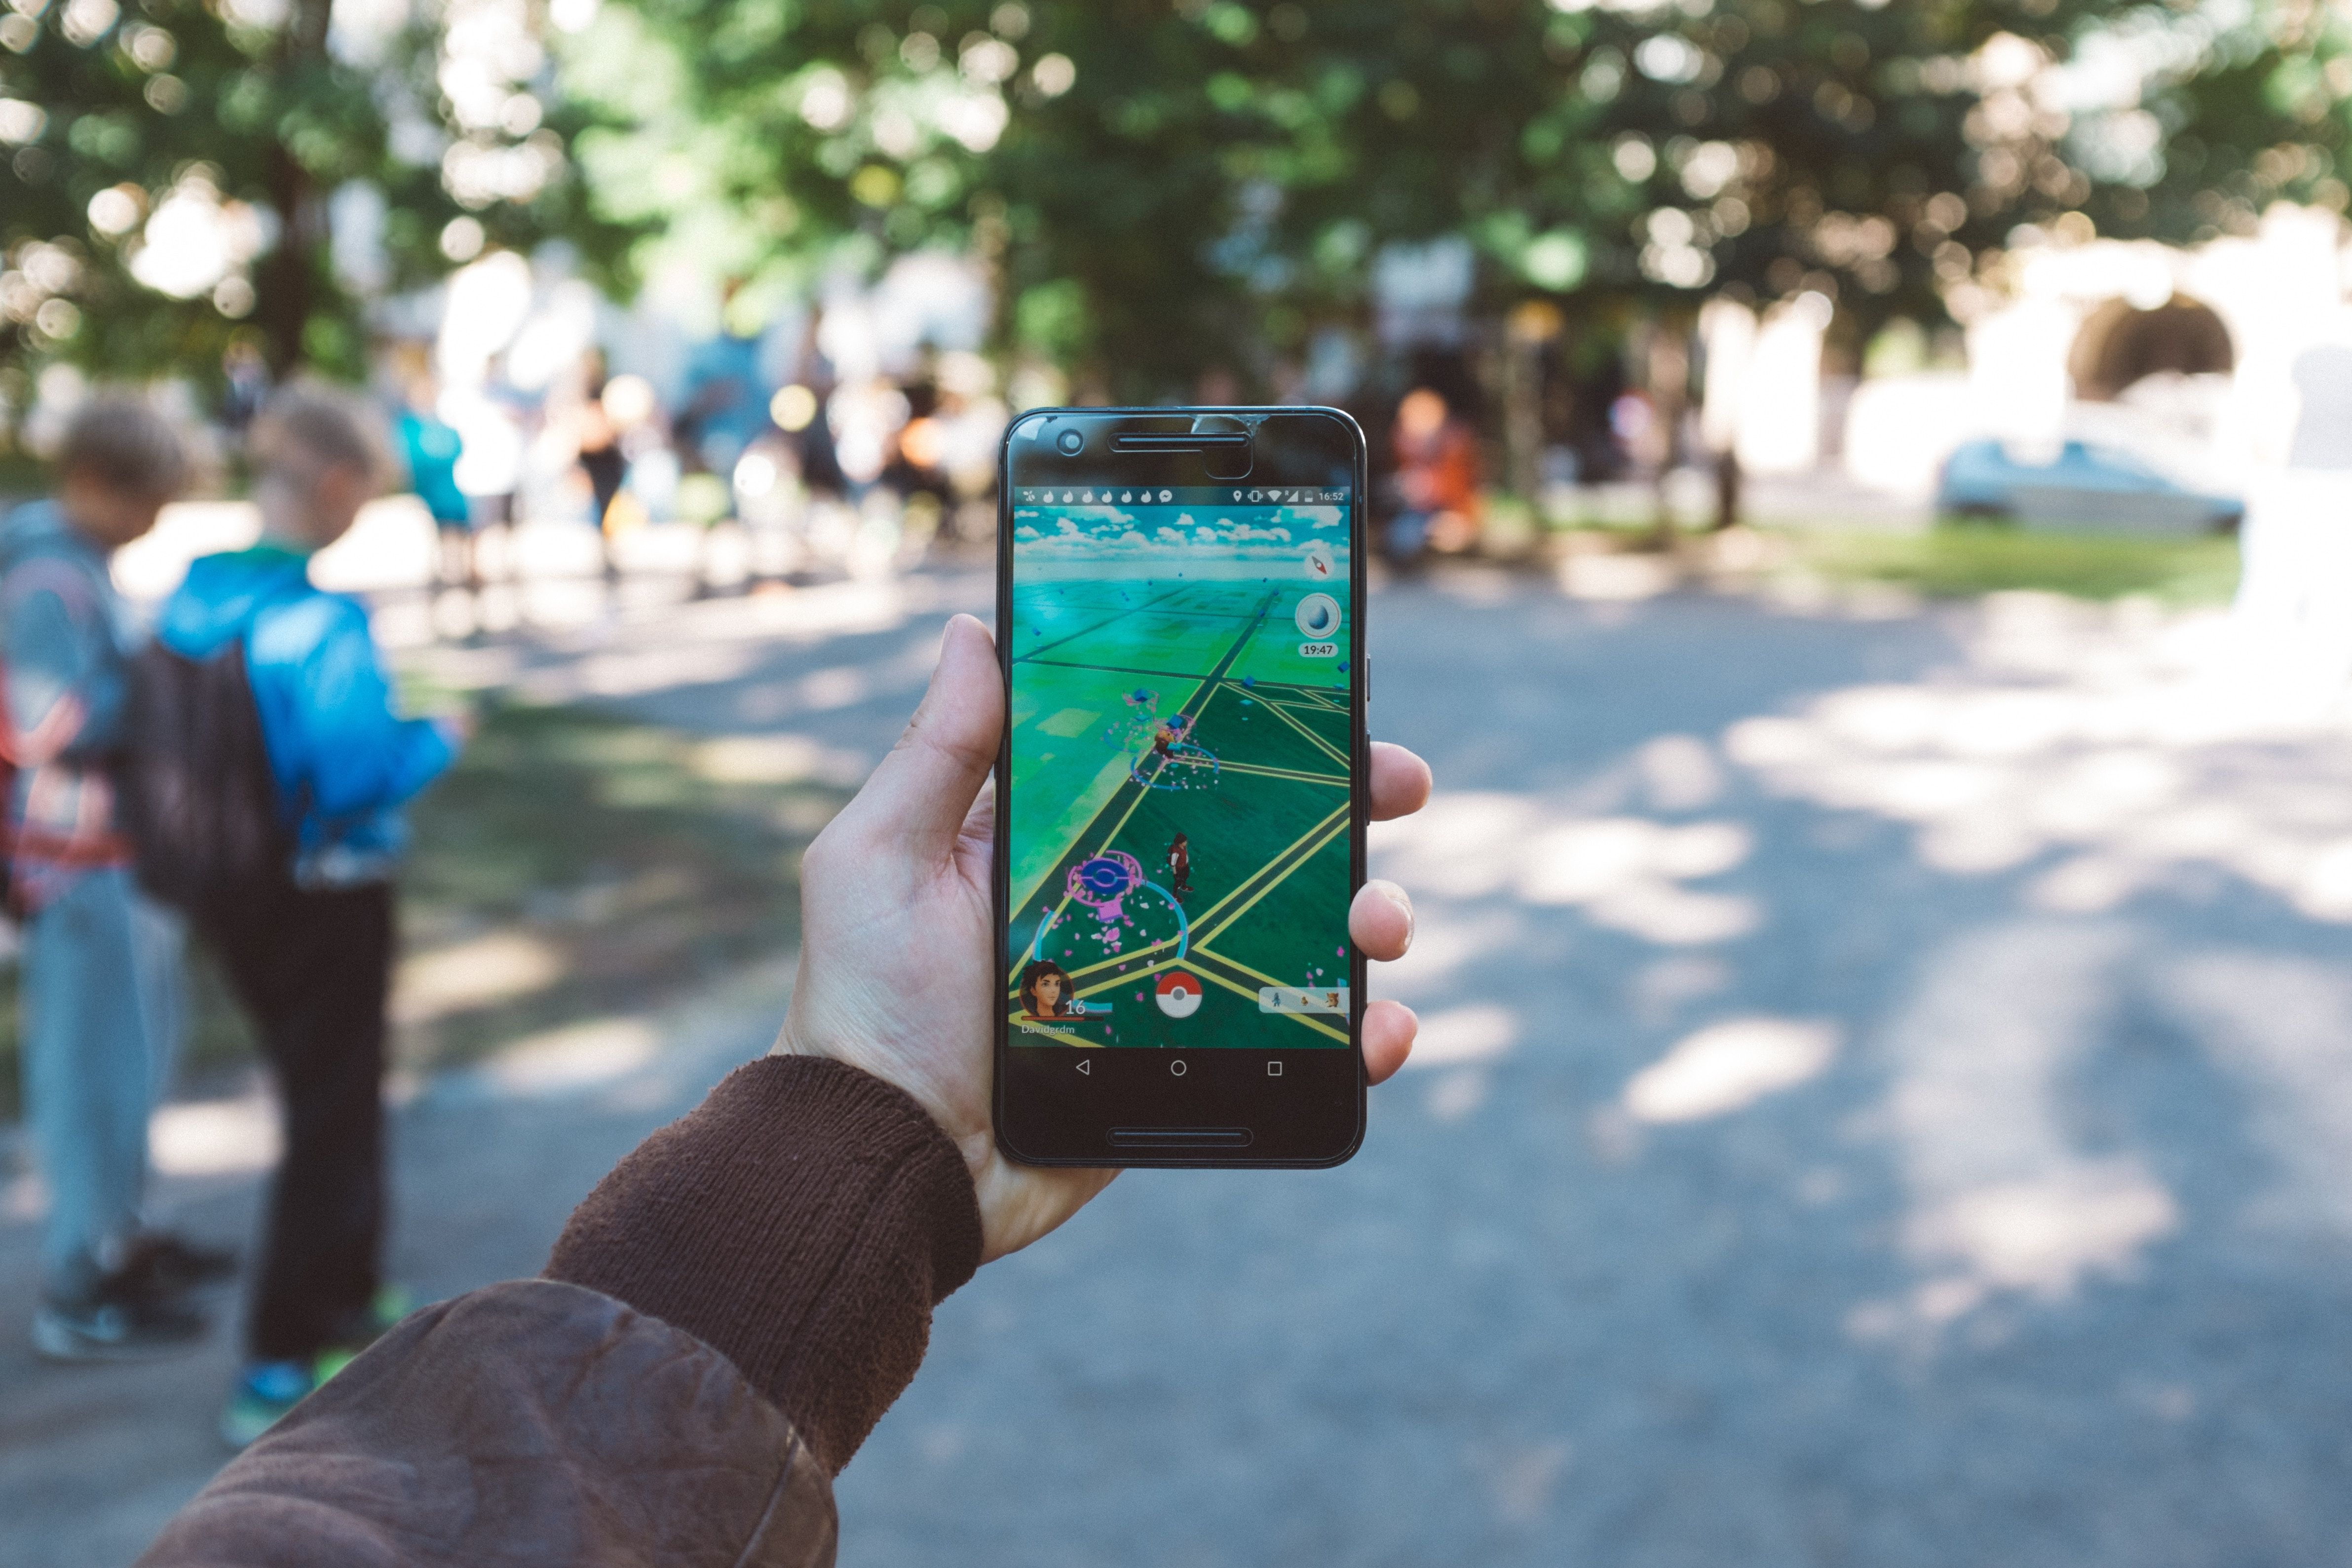 How much does it cost to develop an app like Pokemon Go?